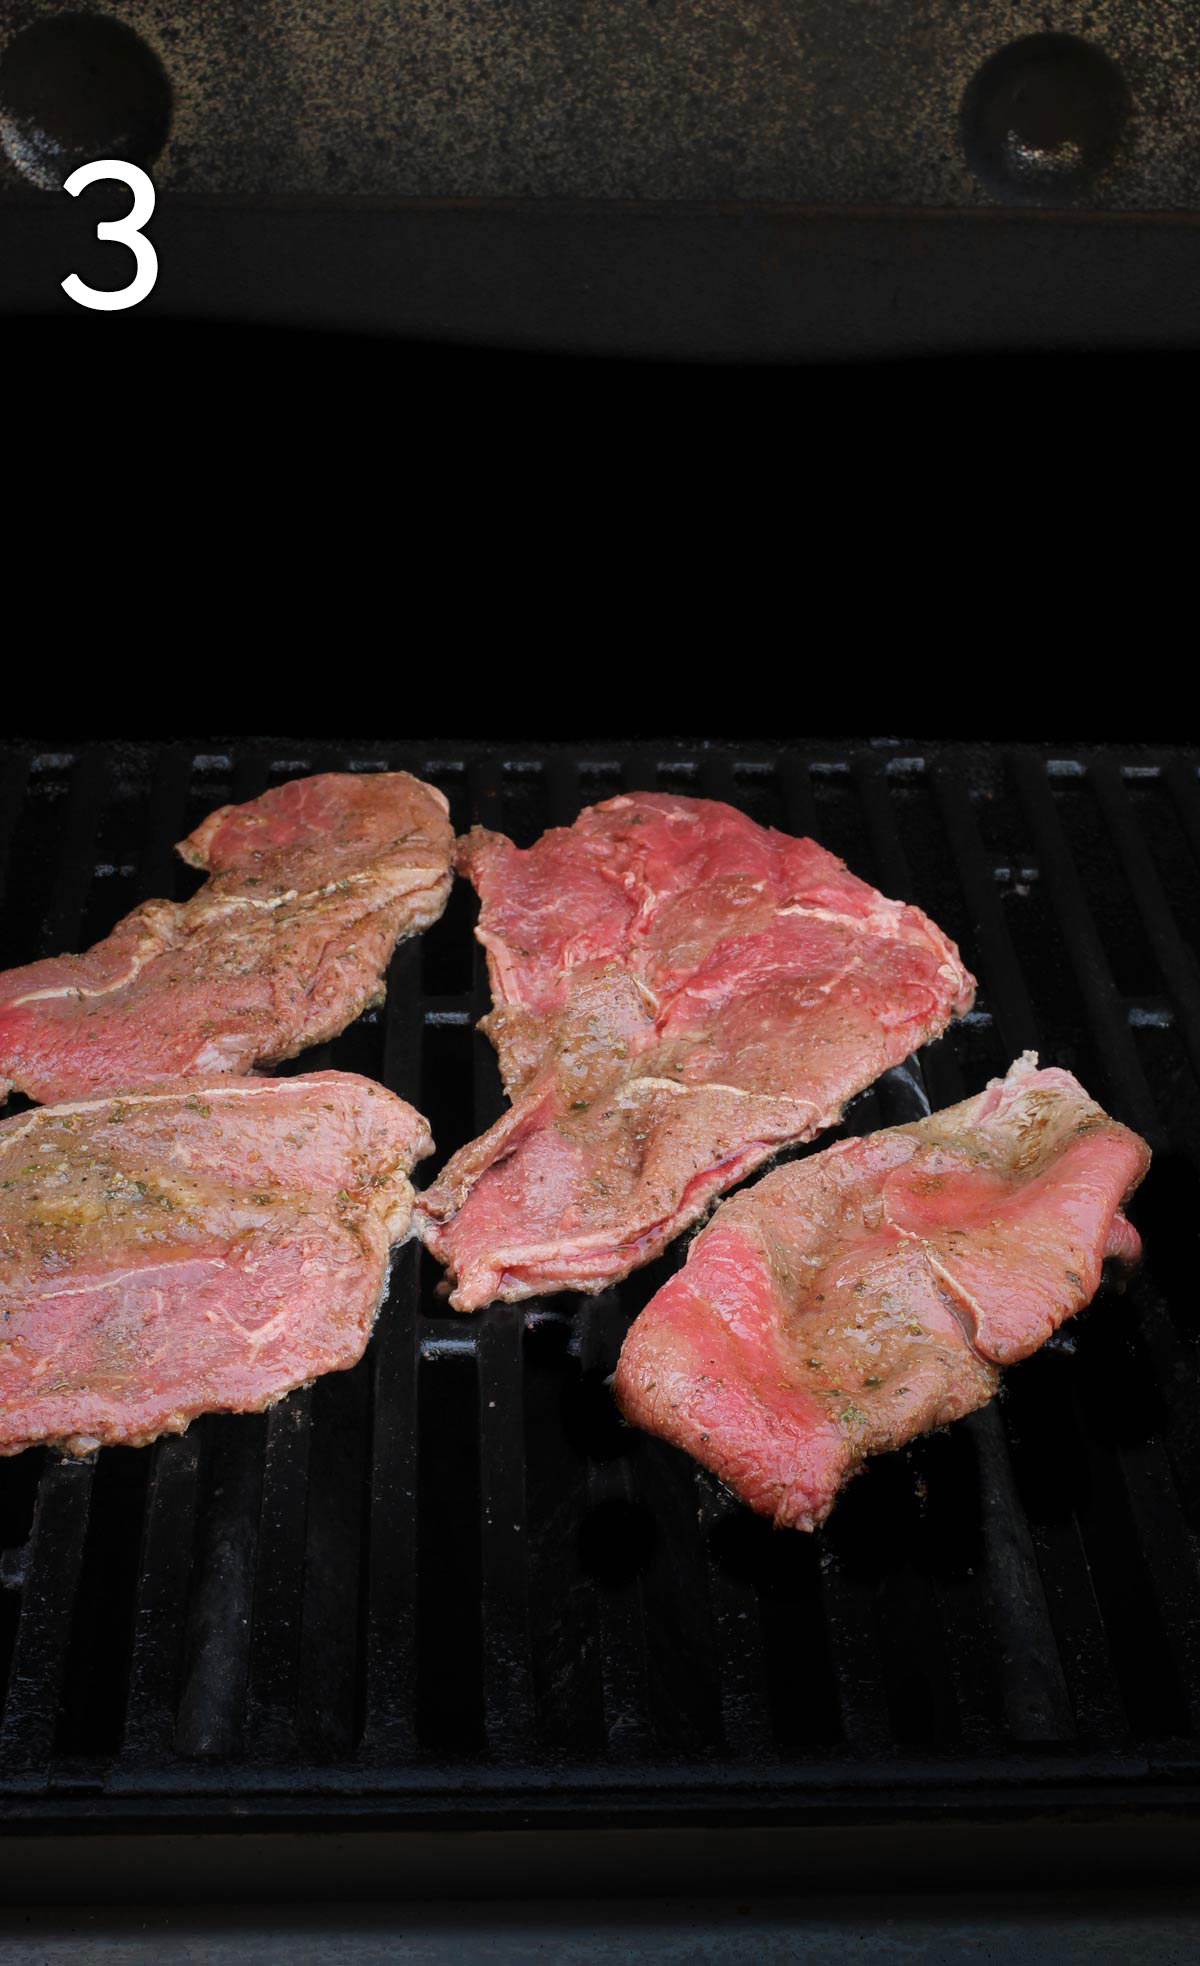 uncooked steak on hot grill.